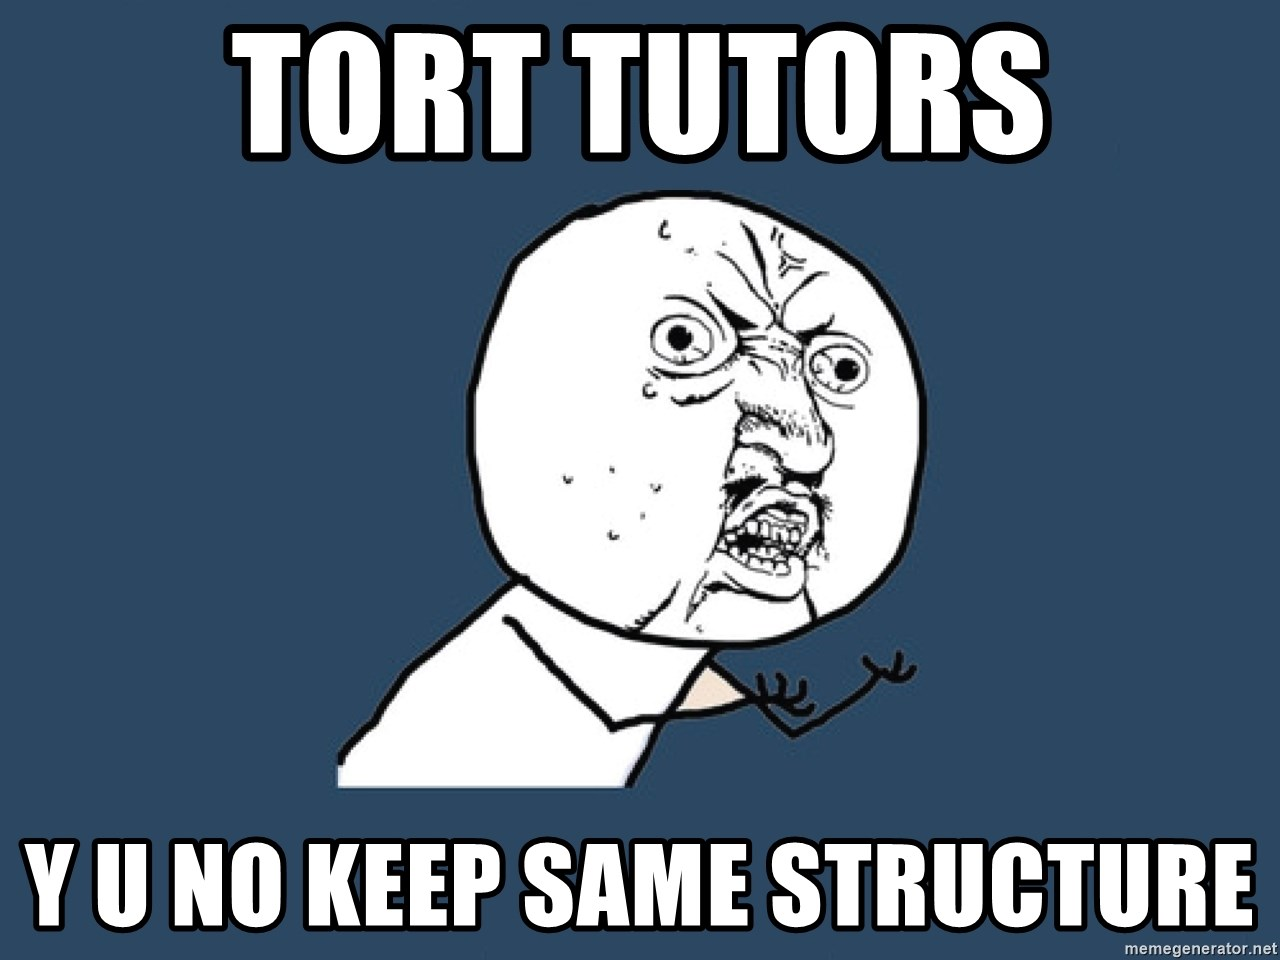 Y U No - Tort tutors y u no keep same structure